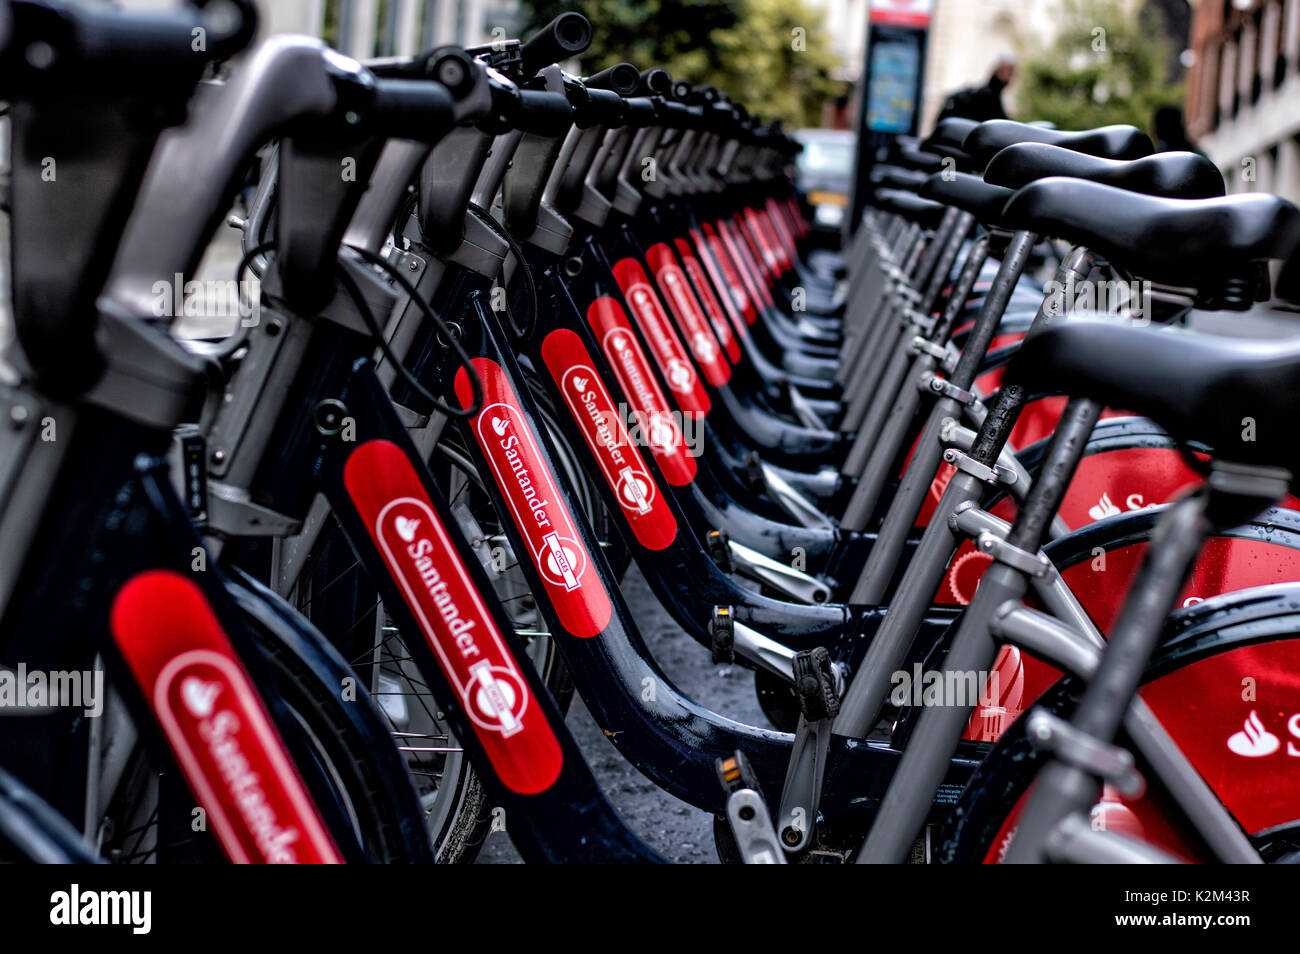 santander-bike-dock-in-london-K2M43R.jpg